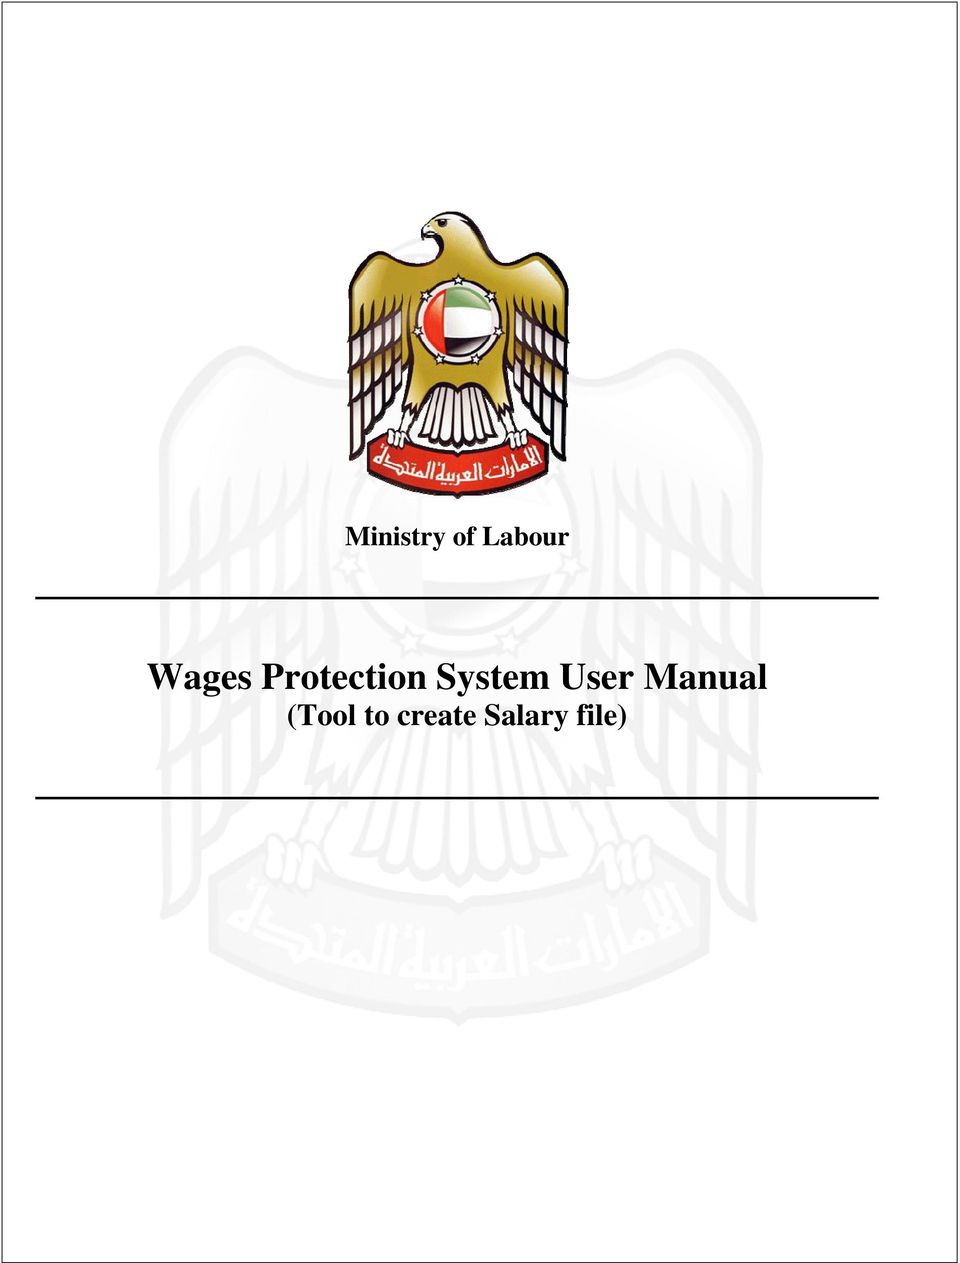 Ministry of Labour. Wages Protection System User Manual